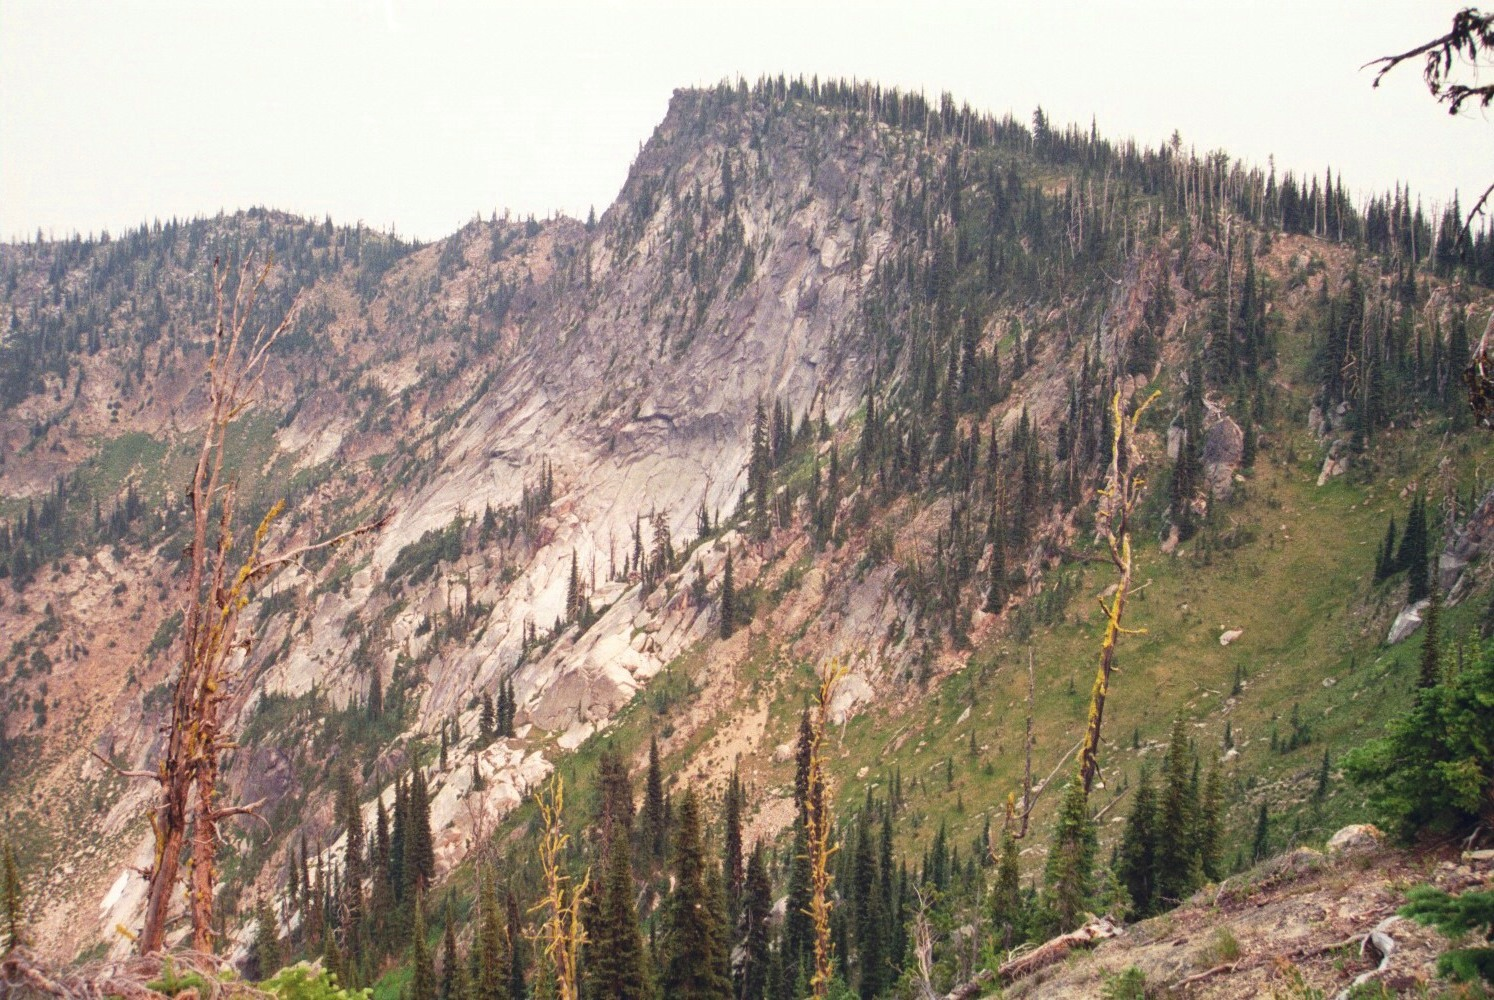 This is the view of Indian Peak from the ridge that runs northwest from the summit. Most of the mountain is formed of gradual slopes, but the north face is quite steep and rugged. The dim light is from smoke of area forest fires blocking the sun. July 2007 Mike Hays Photo